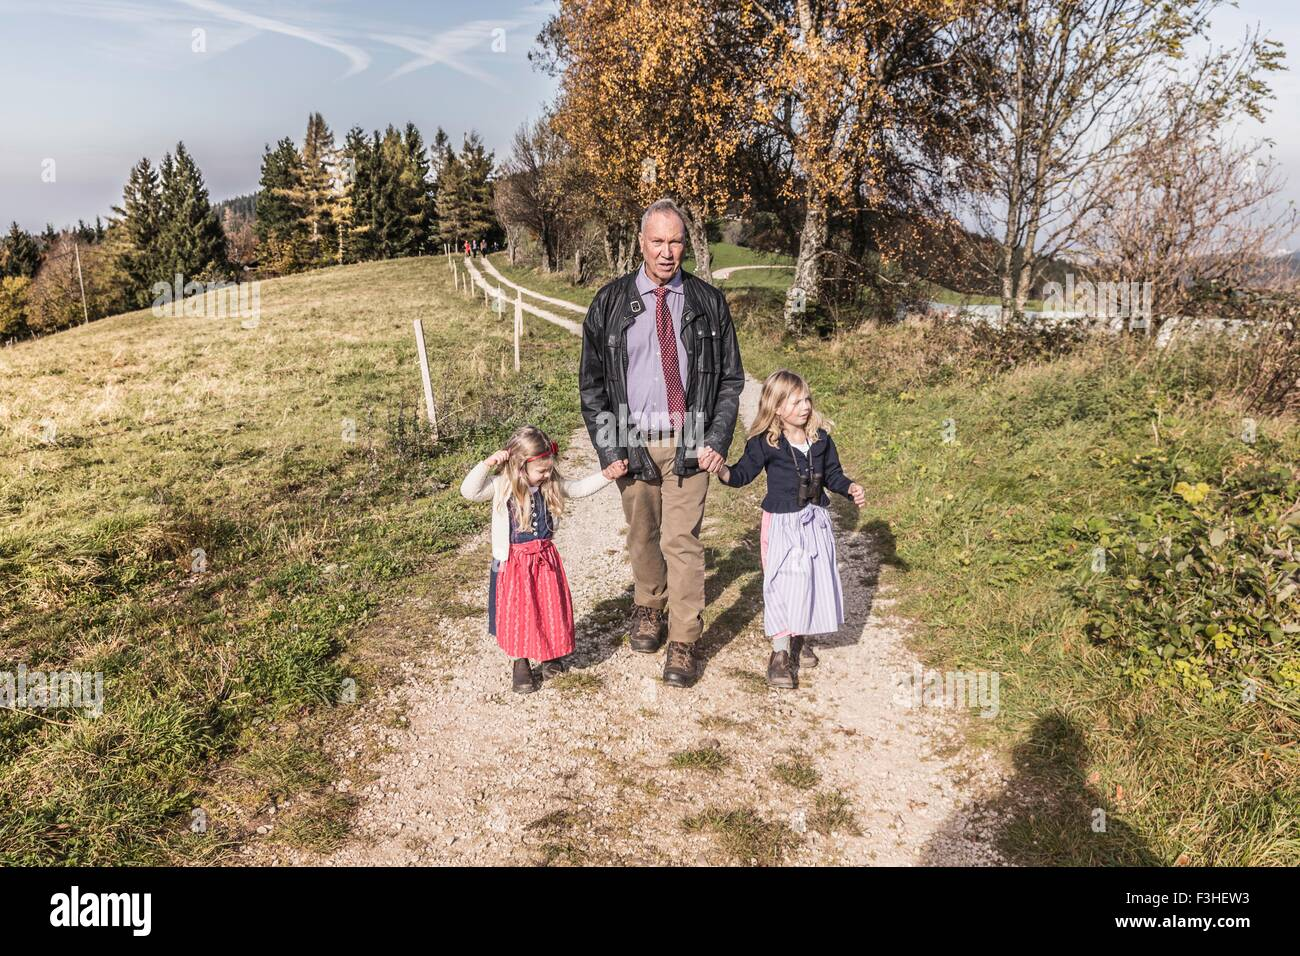 Grandfather strolling on dirt track with two granddaughters, Achenkirch, Austria - Stock Image